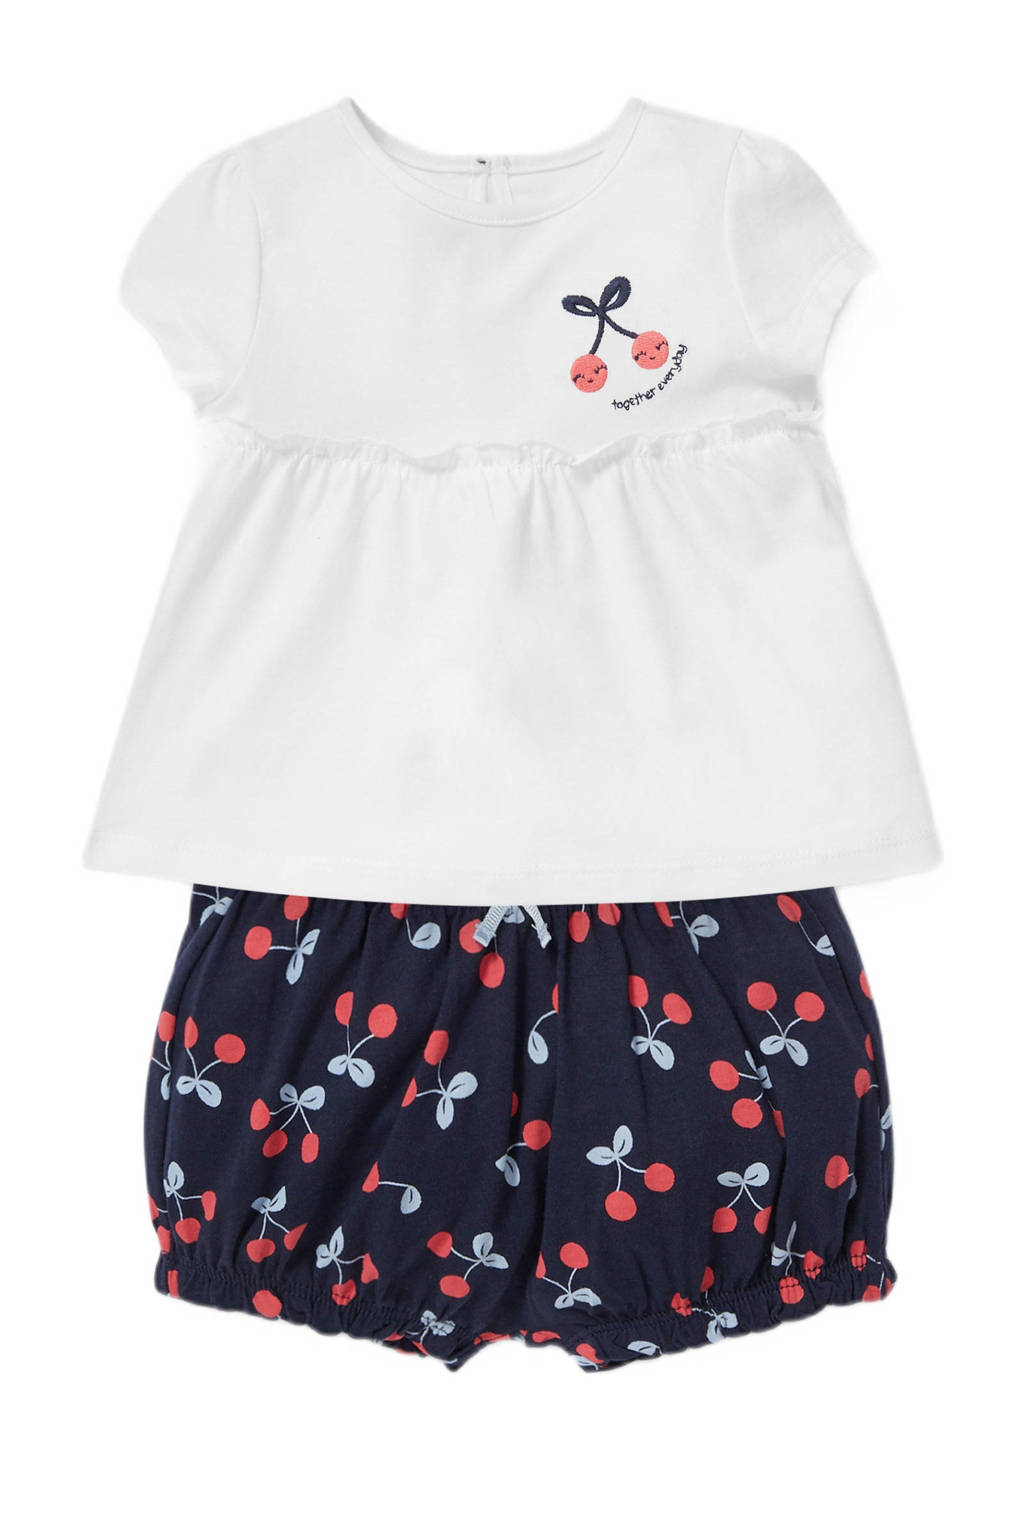 C&A Baby Club T-shirt + short wit/donkerblauw, Wit/donkerblauw